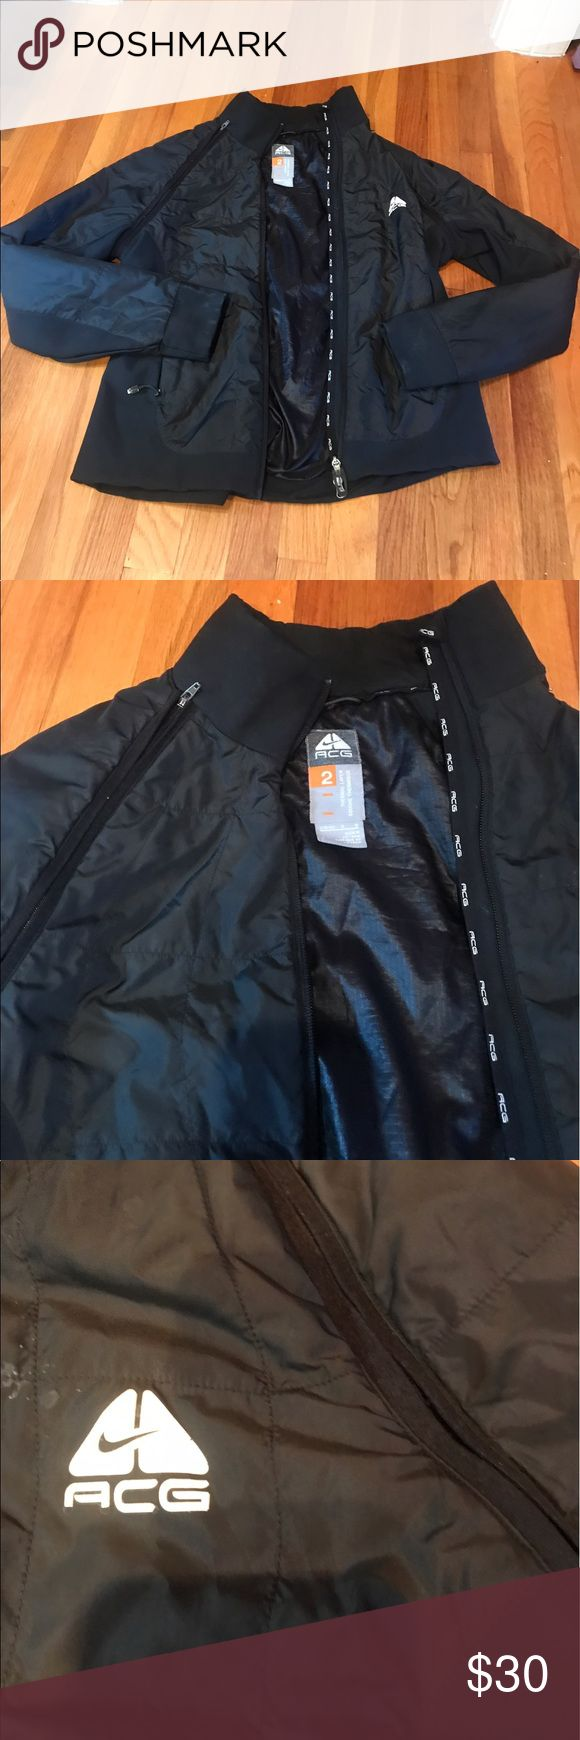 Women's jacket Great used condition womens therma- fit jacket size large by ACG. therma fit with plenty of pockets and zip- up front. Zipper on sleeves that come off to make it into a vest as well! Nike ACG Jackets & Coats